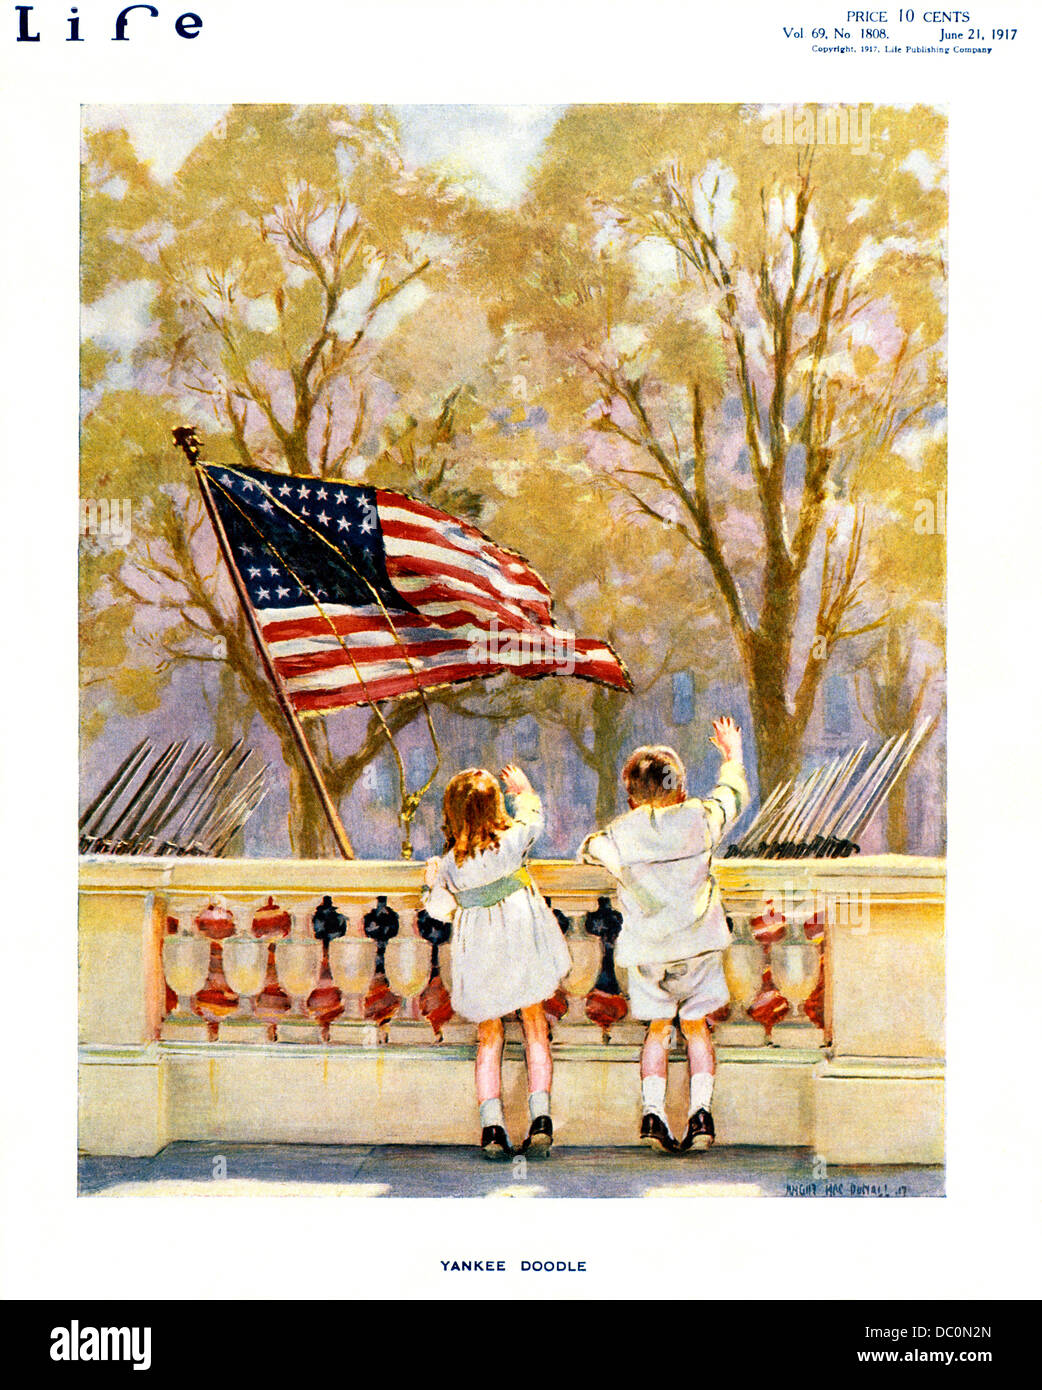 af0cf3c5b 1910s YANKEE DOODLE BOY AND GIRL WAVING WATCHING MILITARY PARADE AMERICAN  FLAG JUNE 21 1917 LIFE